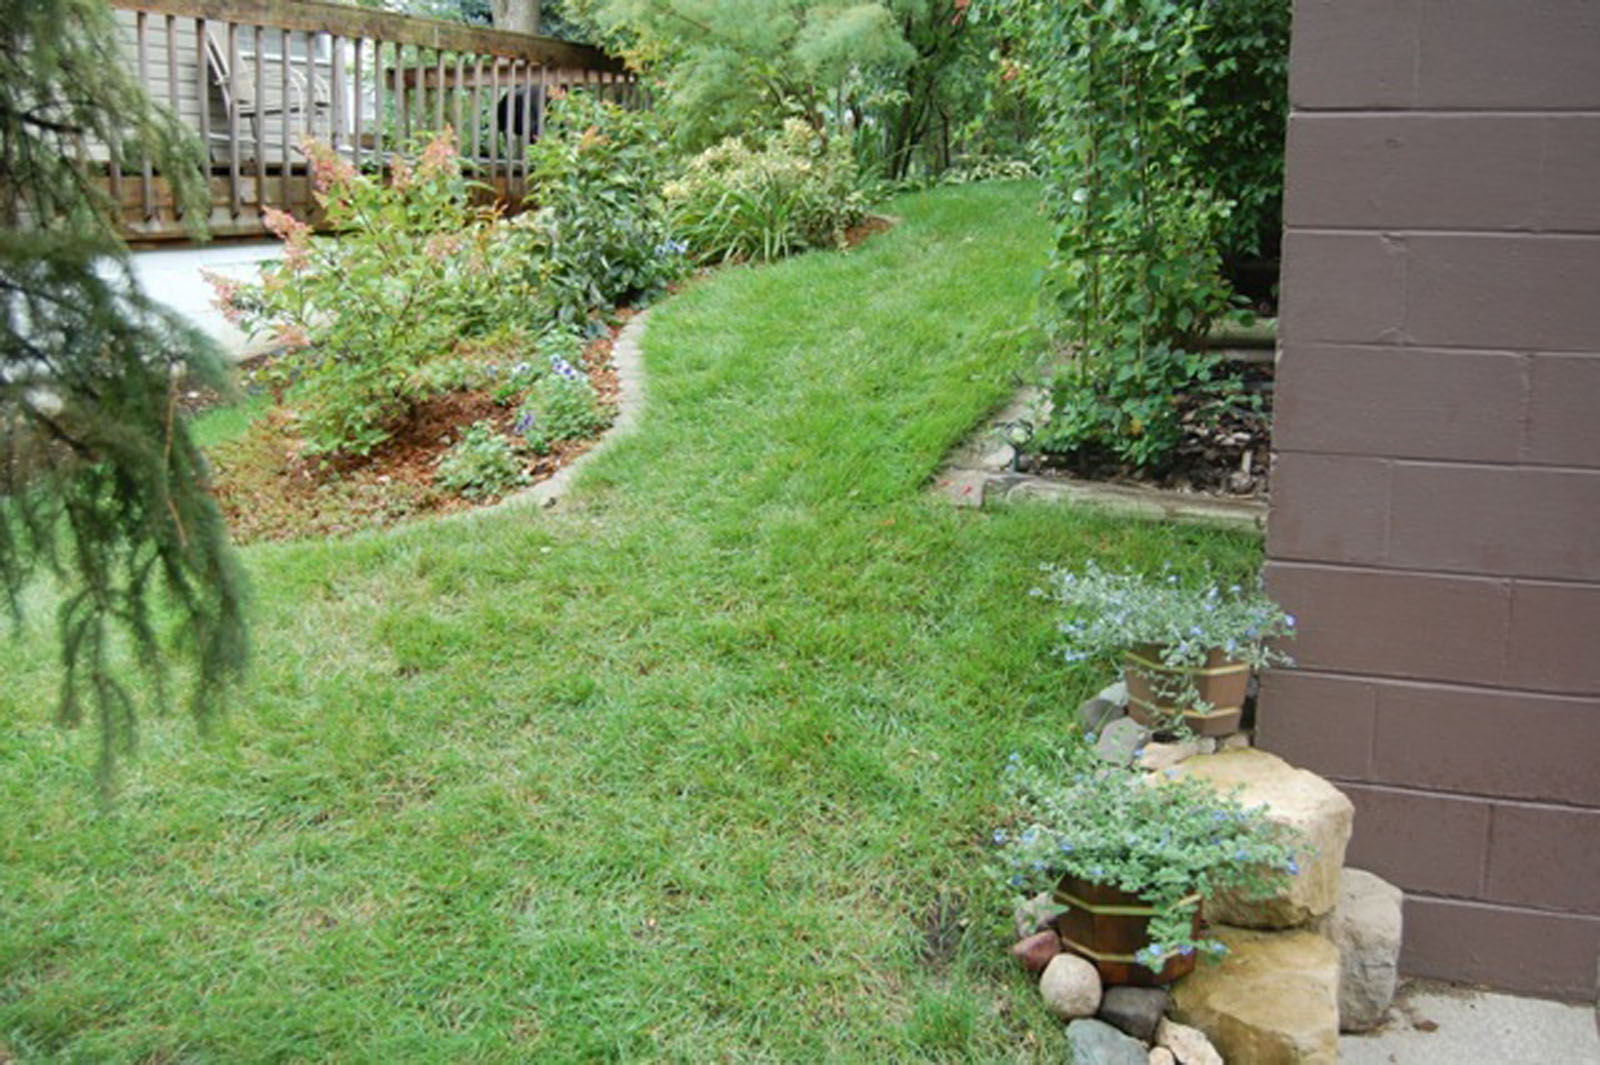 St. Louis Park Side Yard Before